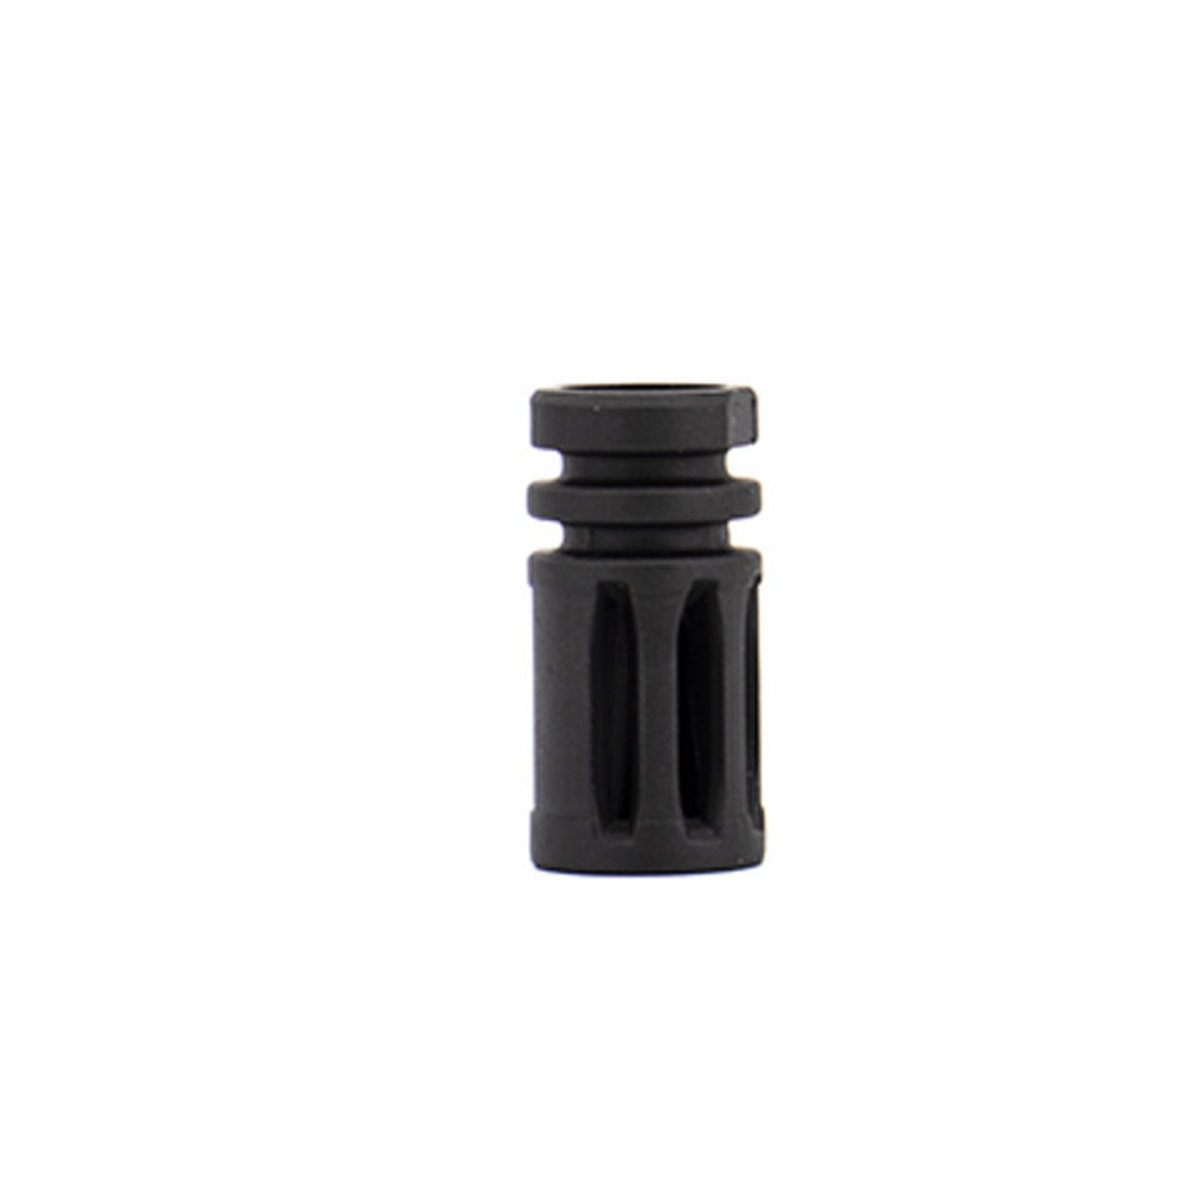 View larger image of Valken Flash Hider Metal Rifle Accessory - Black